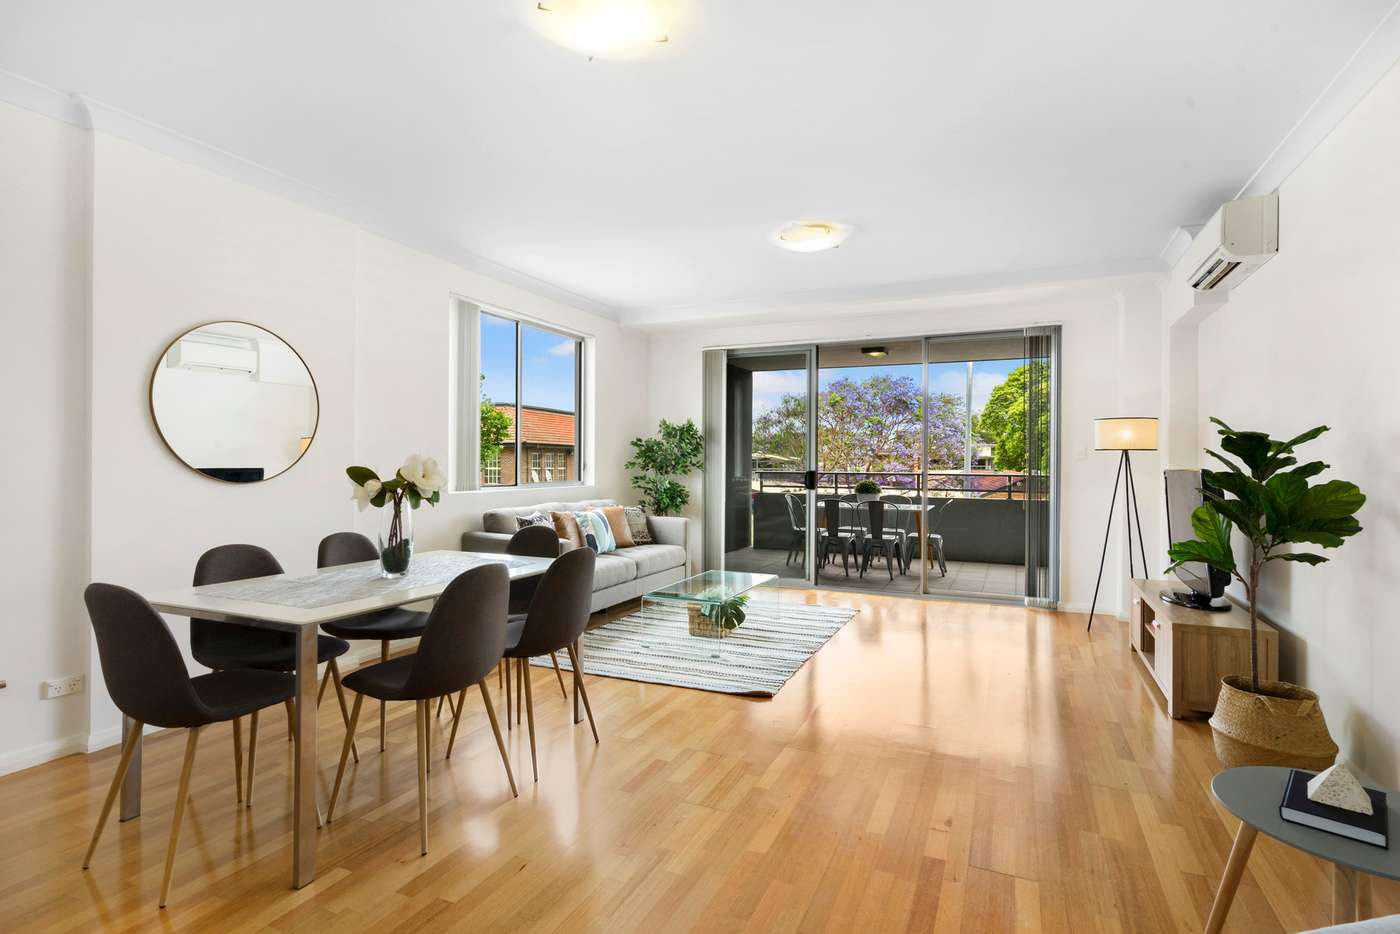 Main view of Homely apartment listing, 17/21 Grose Street, Parramatta NSW 2150